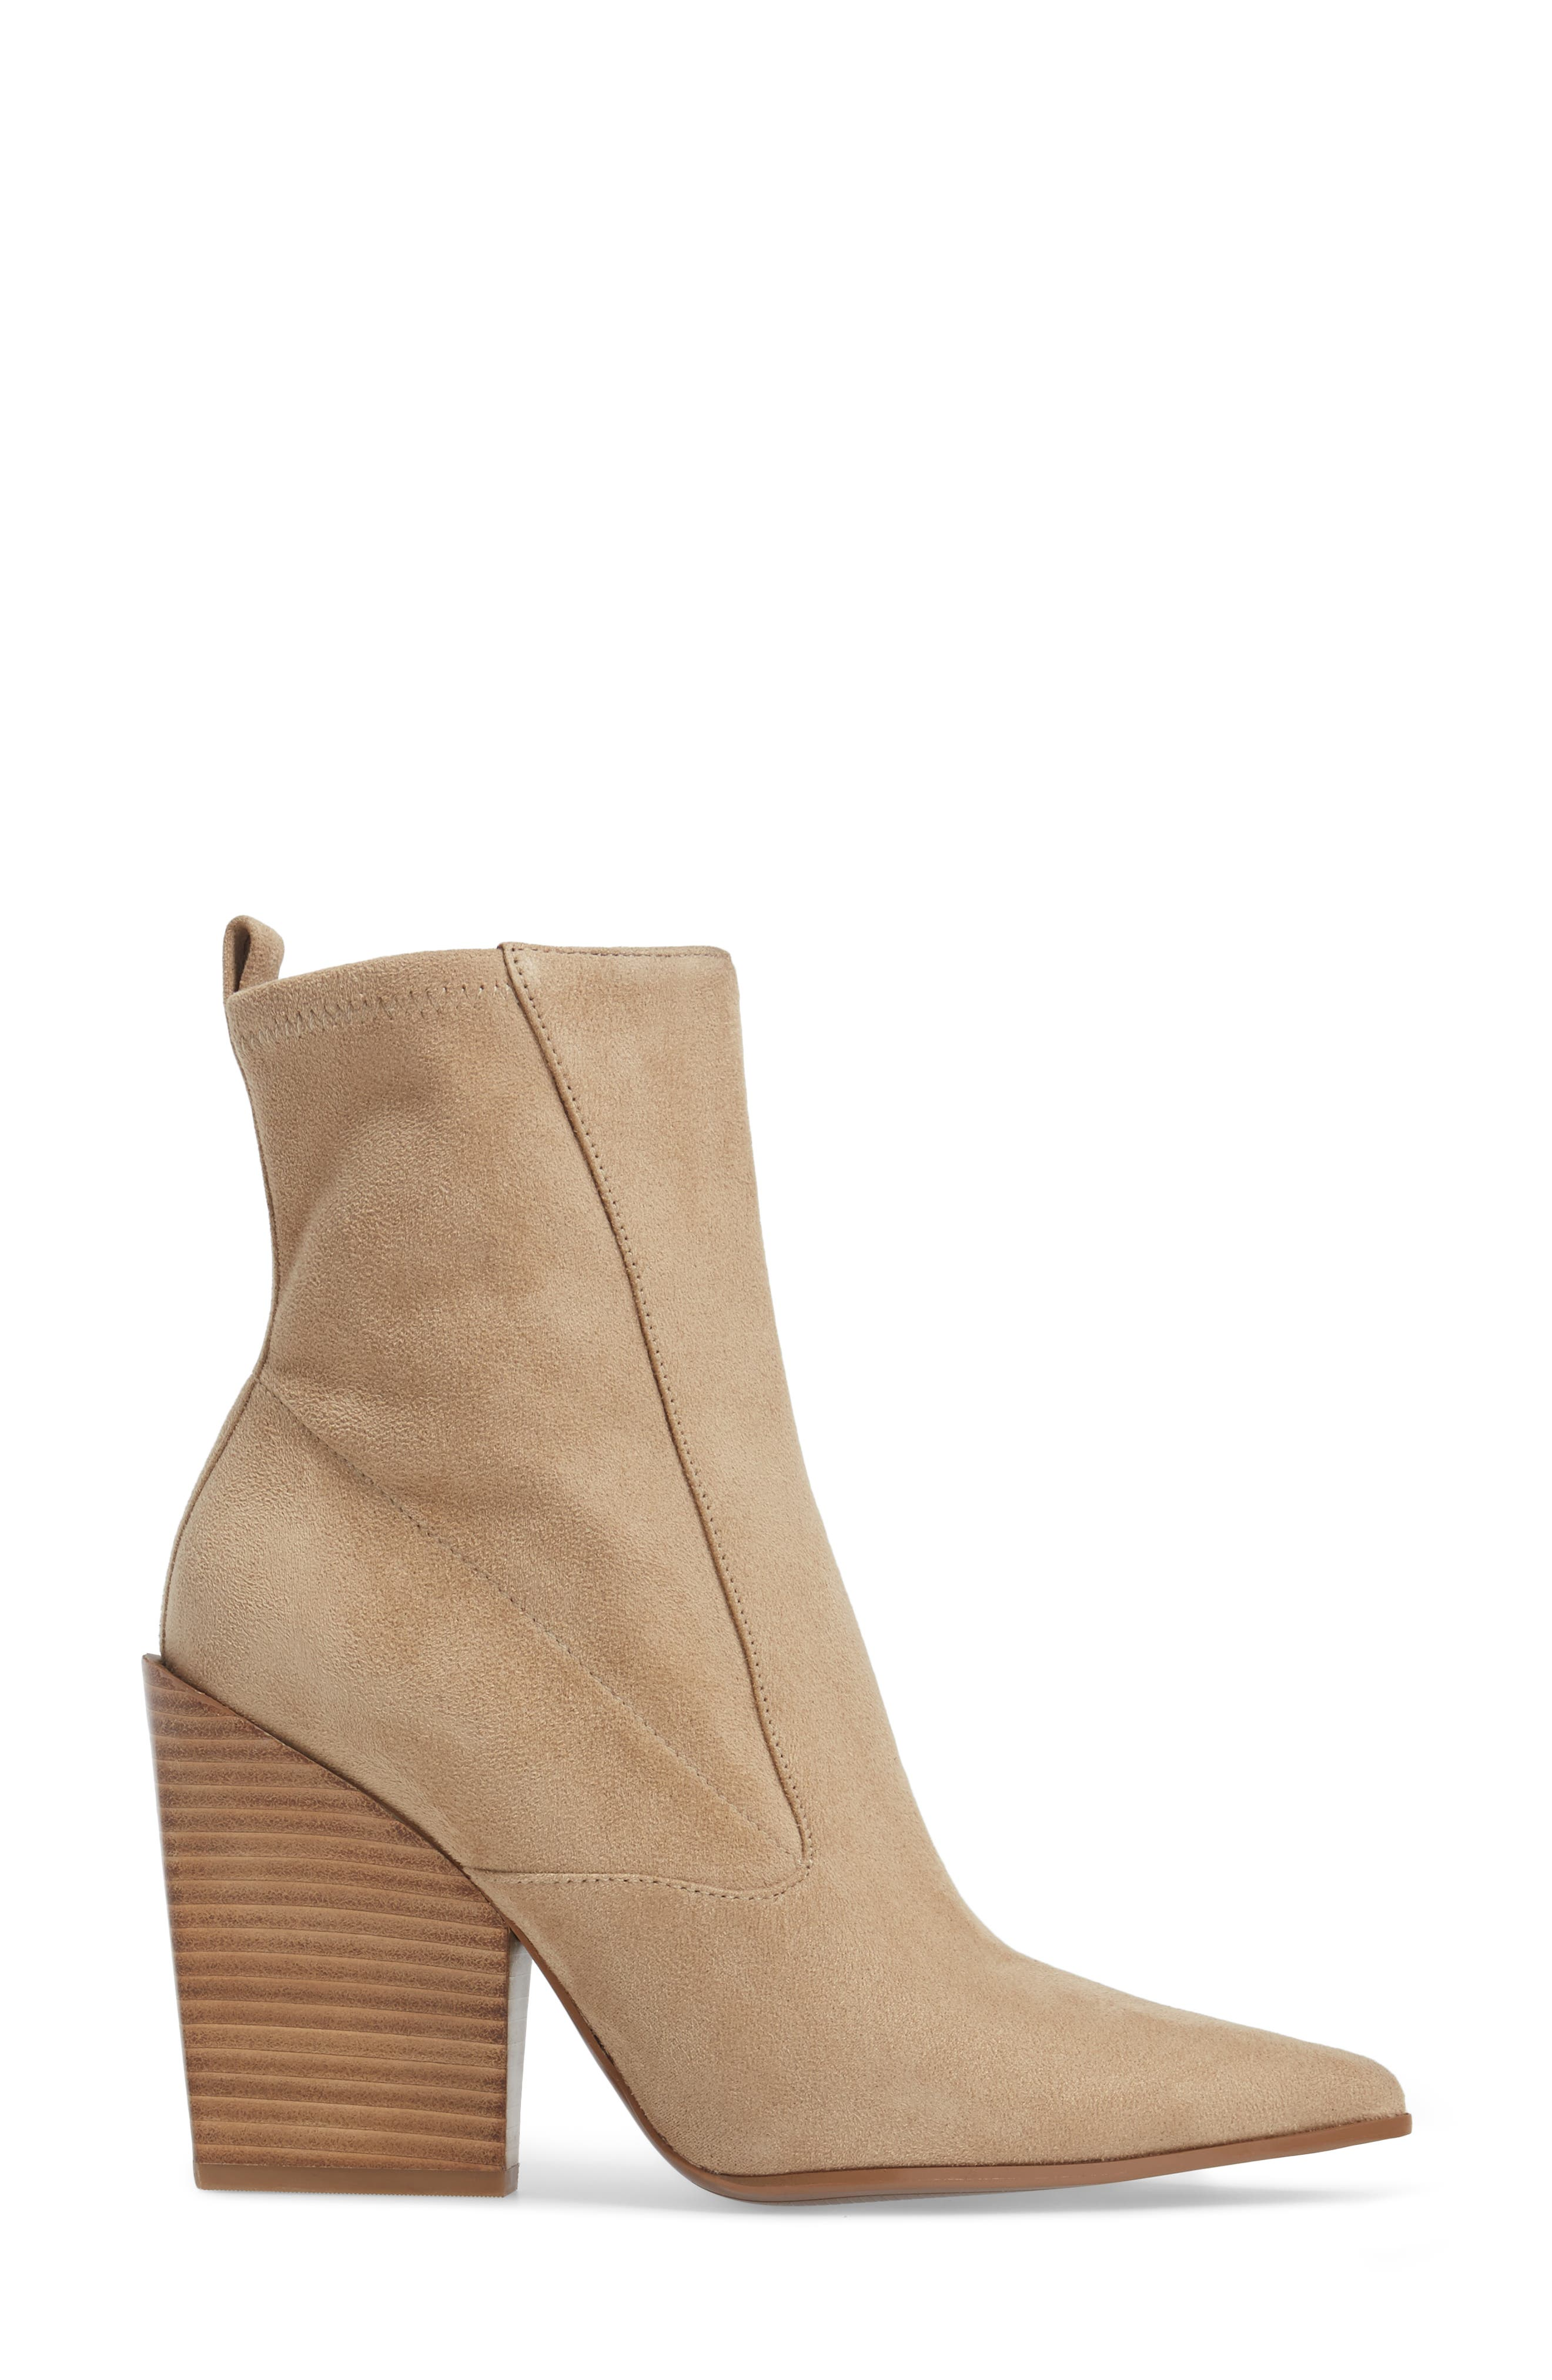 Alternate Image 3  - KENDALL + KYLIE Fallyn Pointed Toe Bootie (Women)